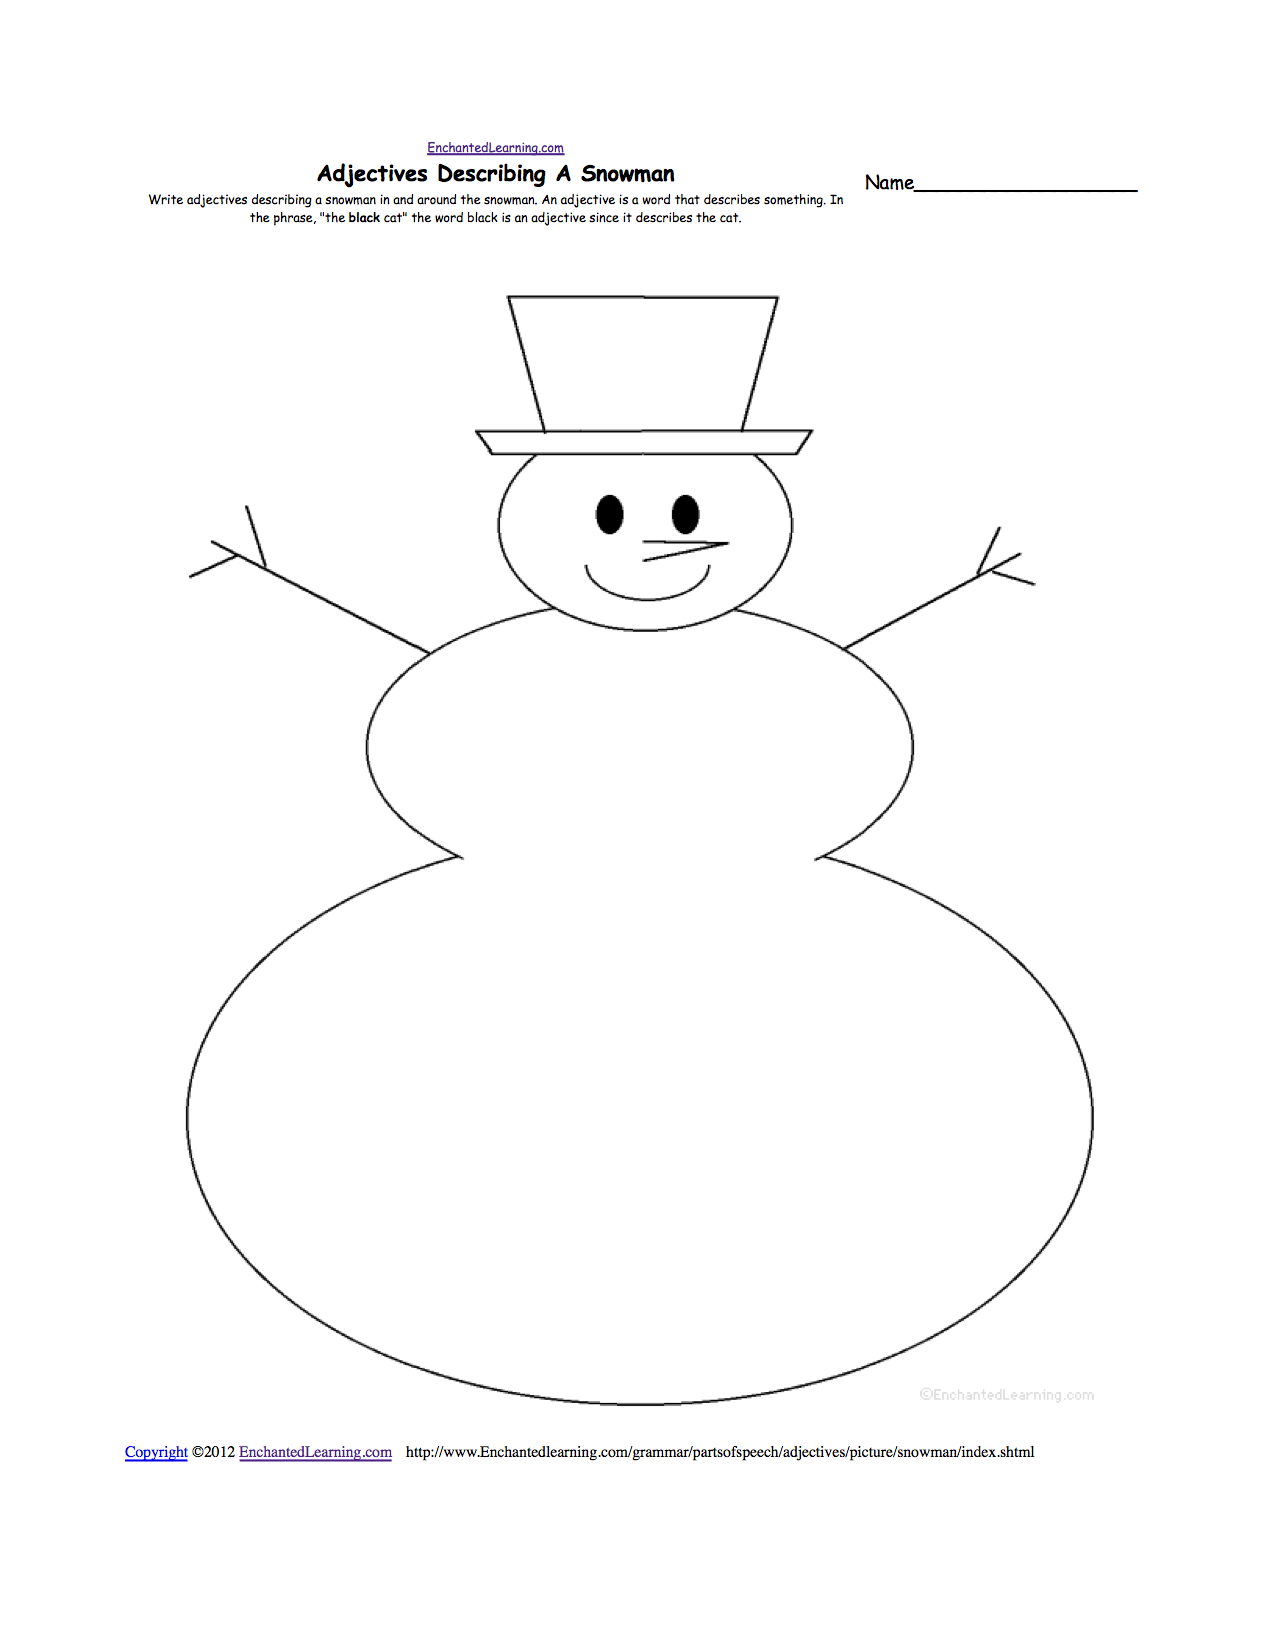 Adjectives Describing A Snowman - Printable Worksheet | Snowman Worksheet Printables